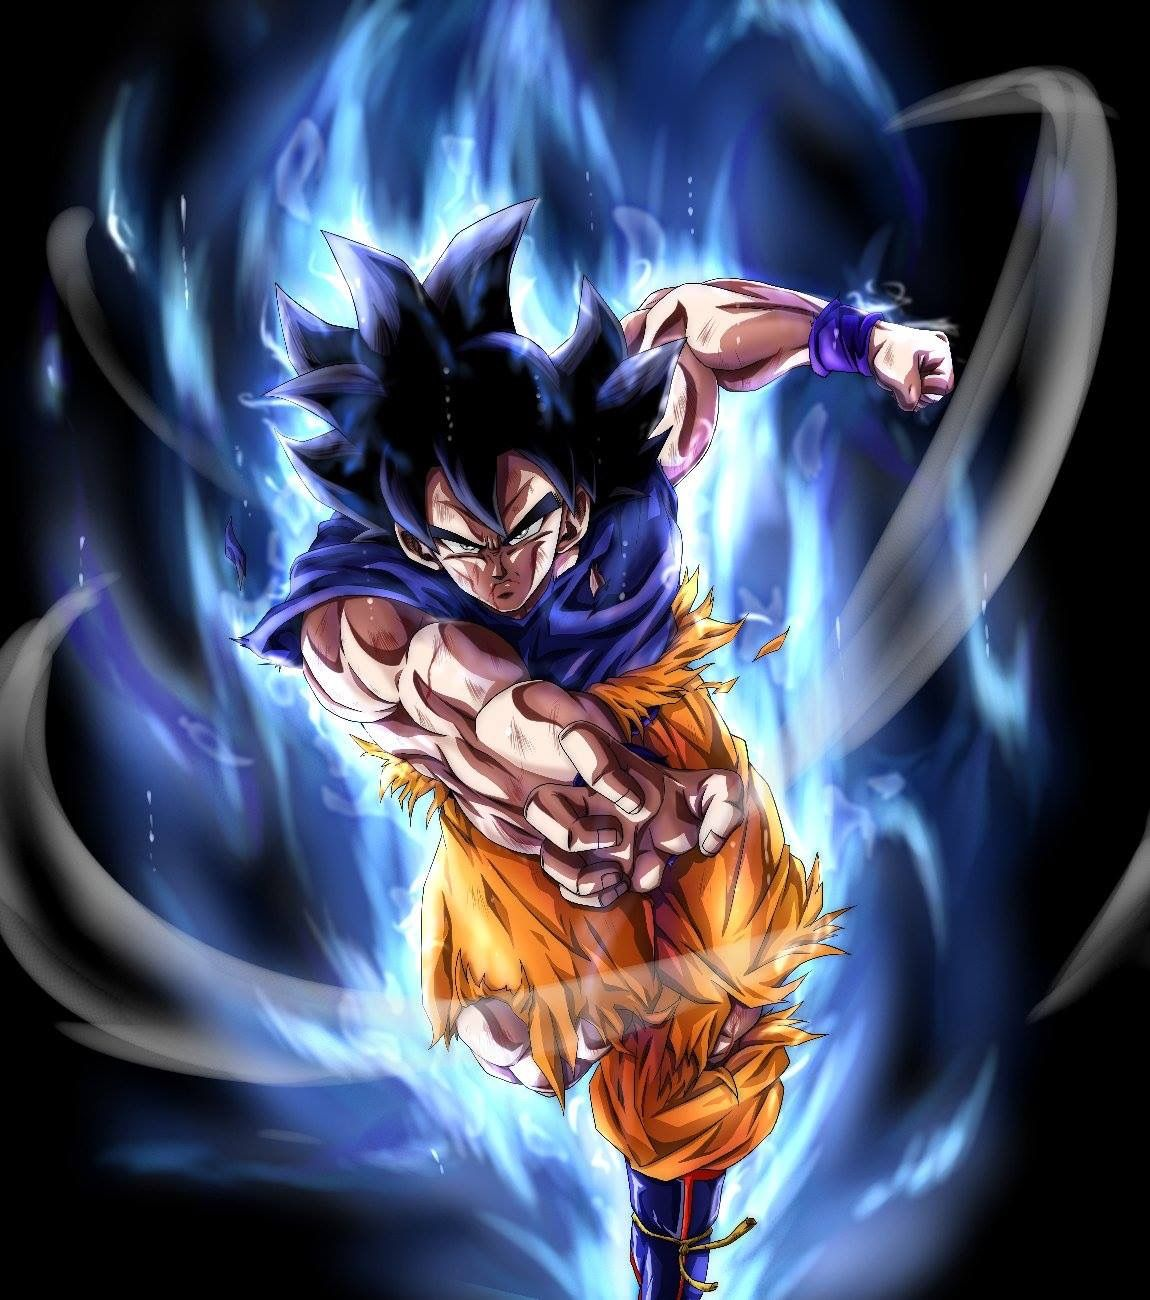 Ultra Instinct Dragon Ball Super Wallpaper: Dragon Ball, Dragon